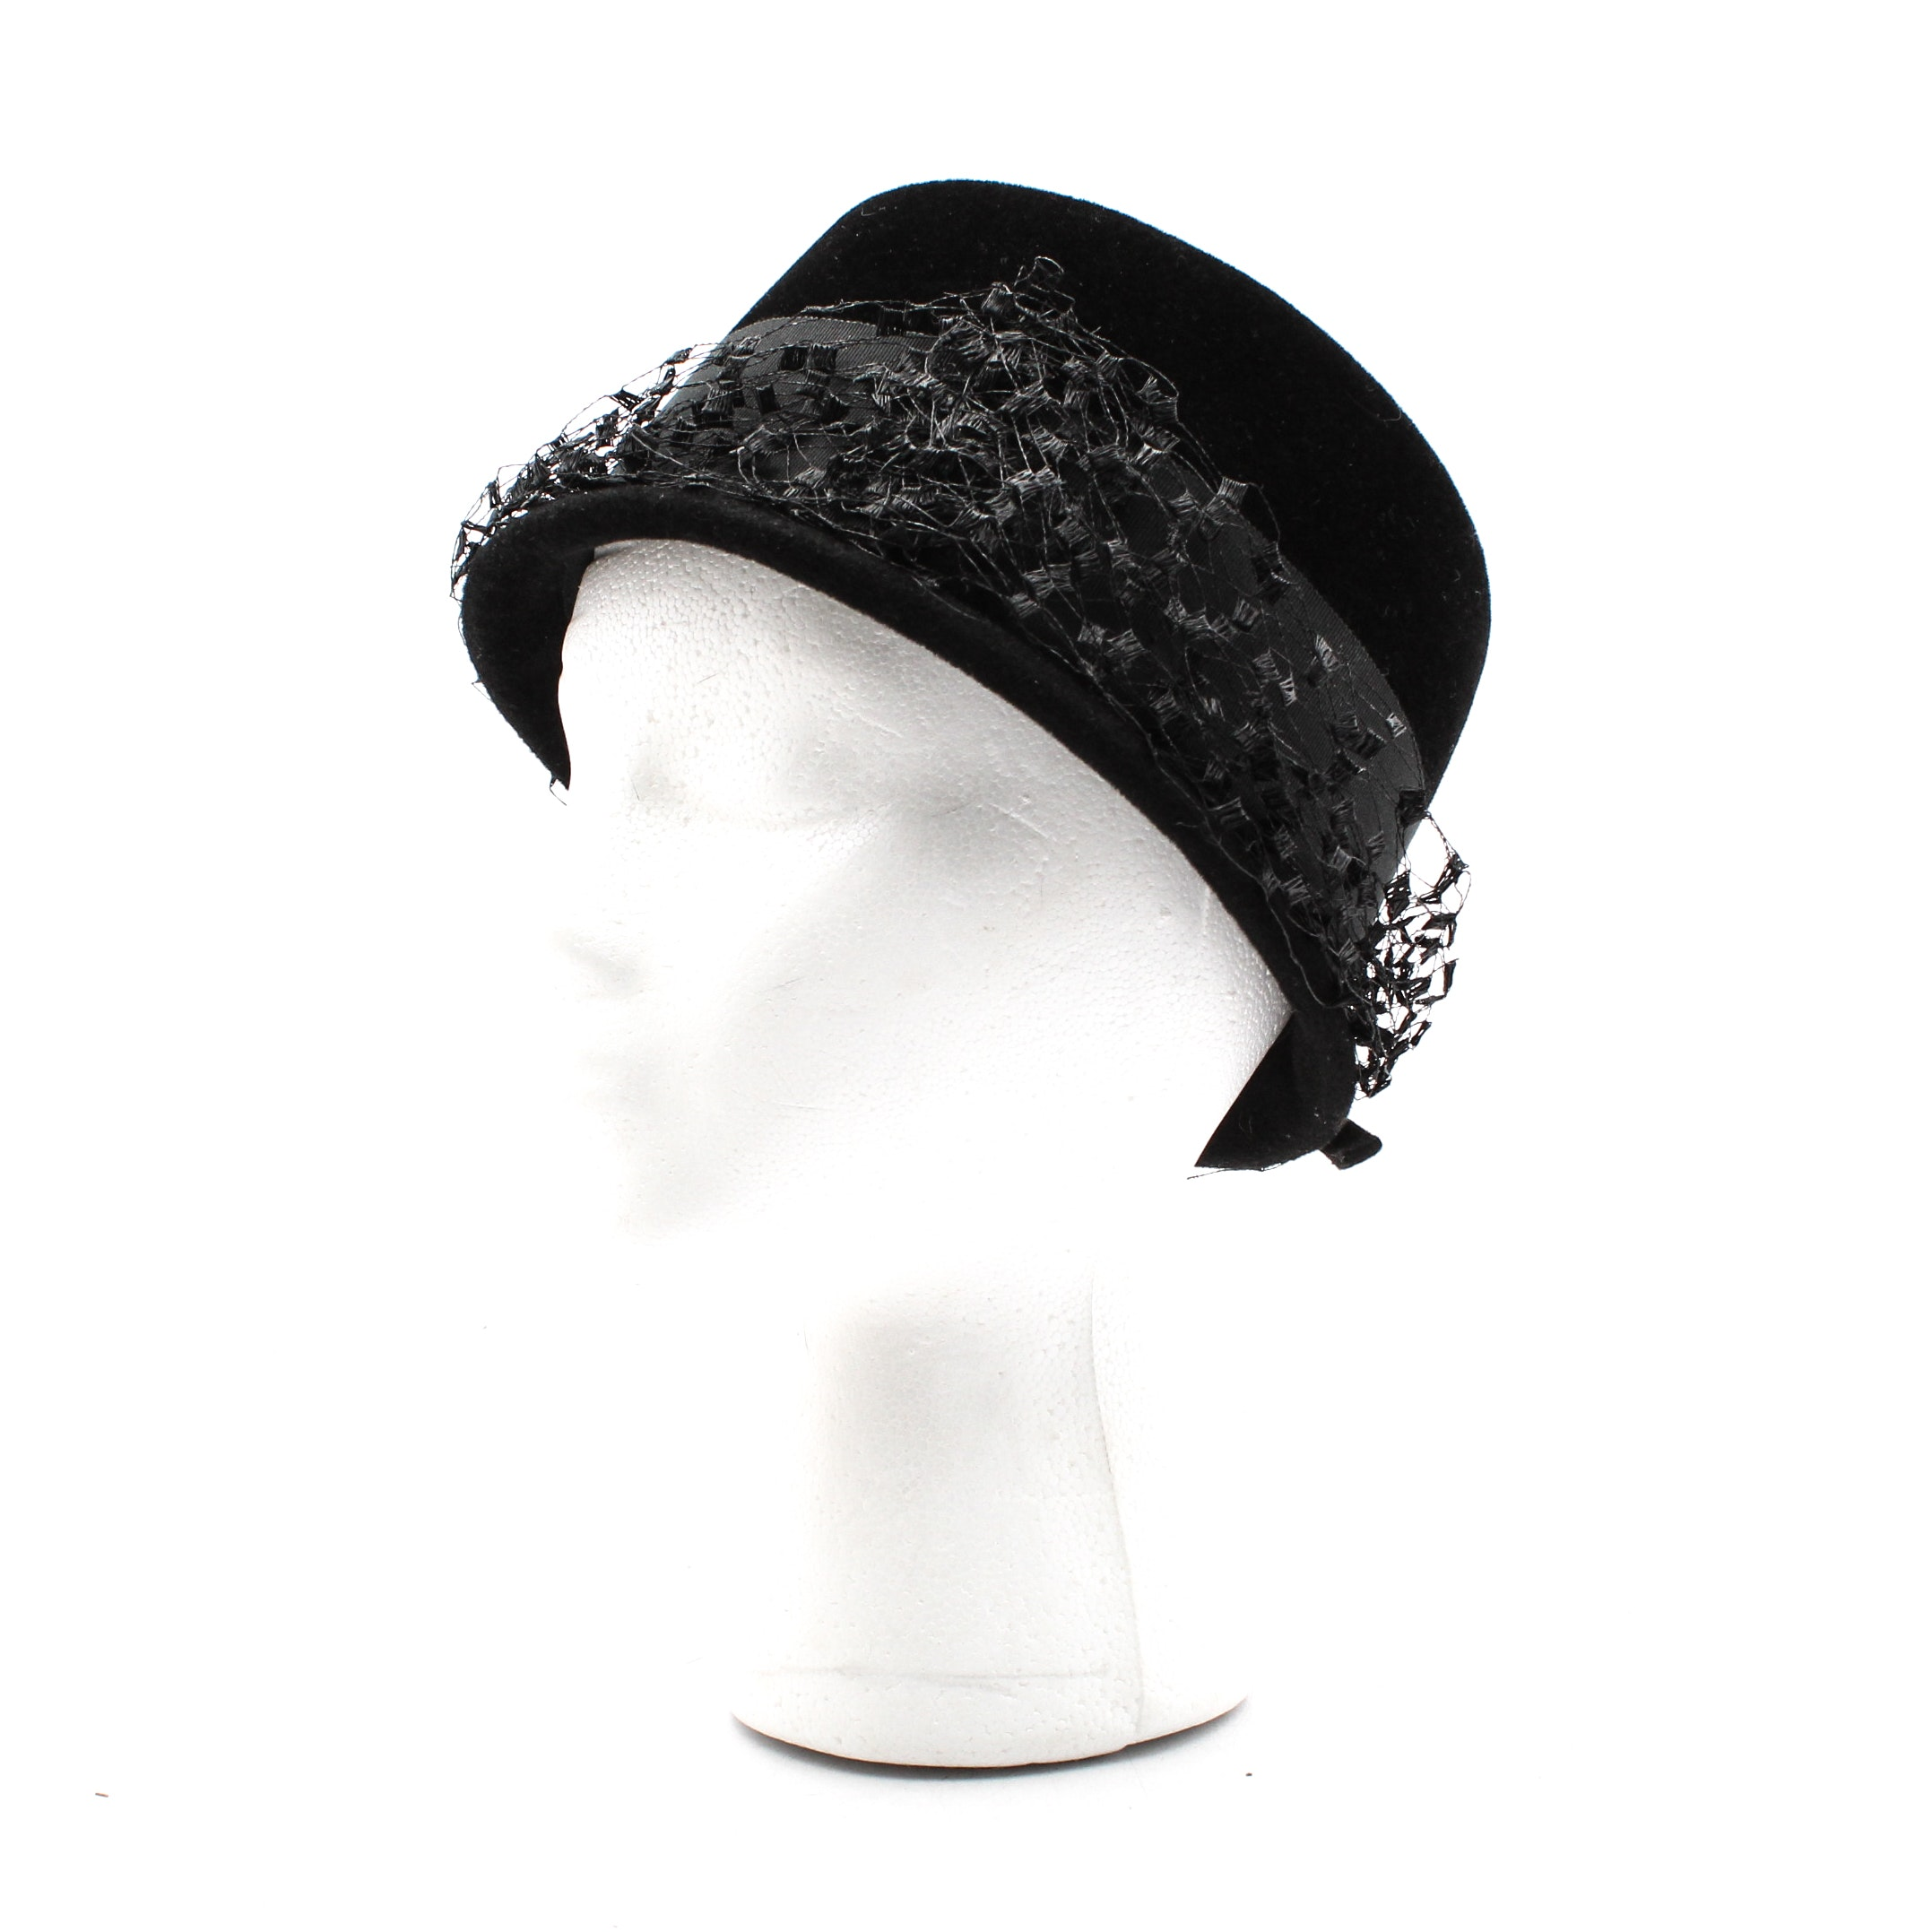 Black Felt Cloche Hat with Netting, Mid-20th Century Vintage